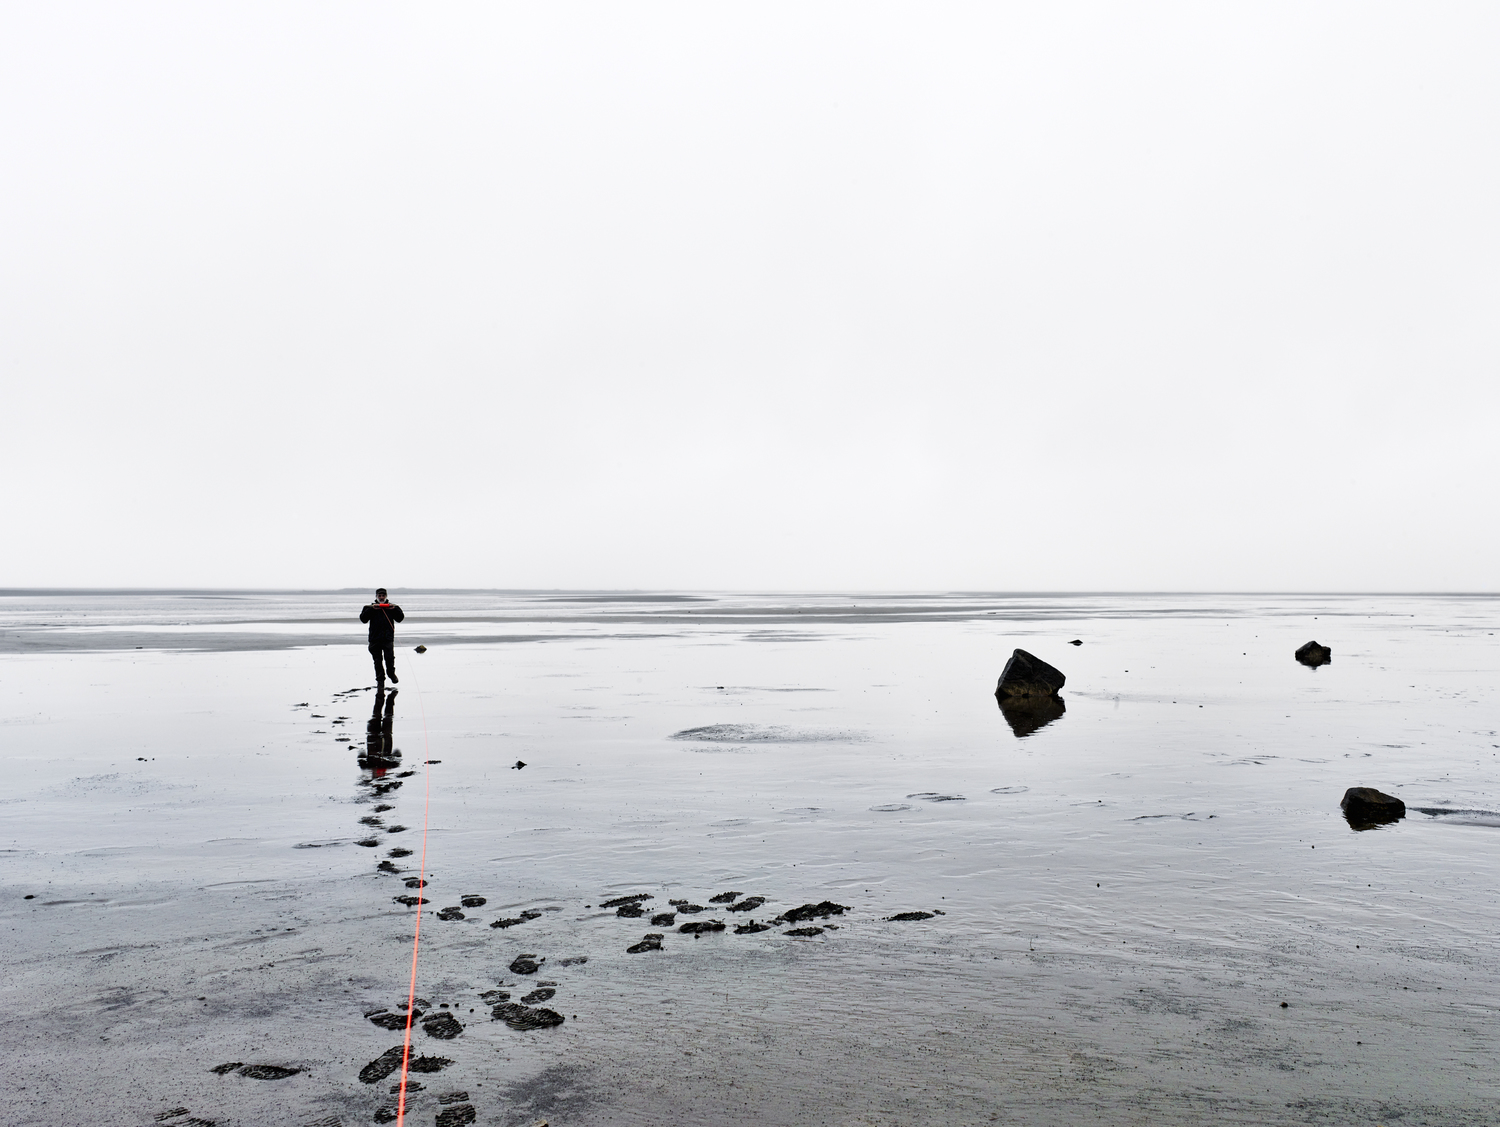 Measuring distance to the horizon from Land's End